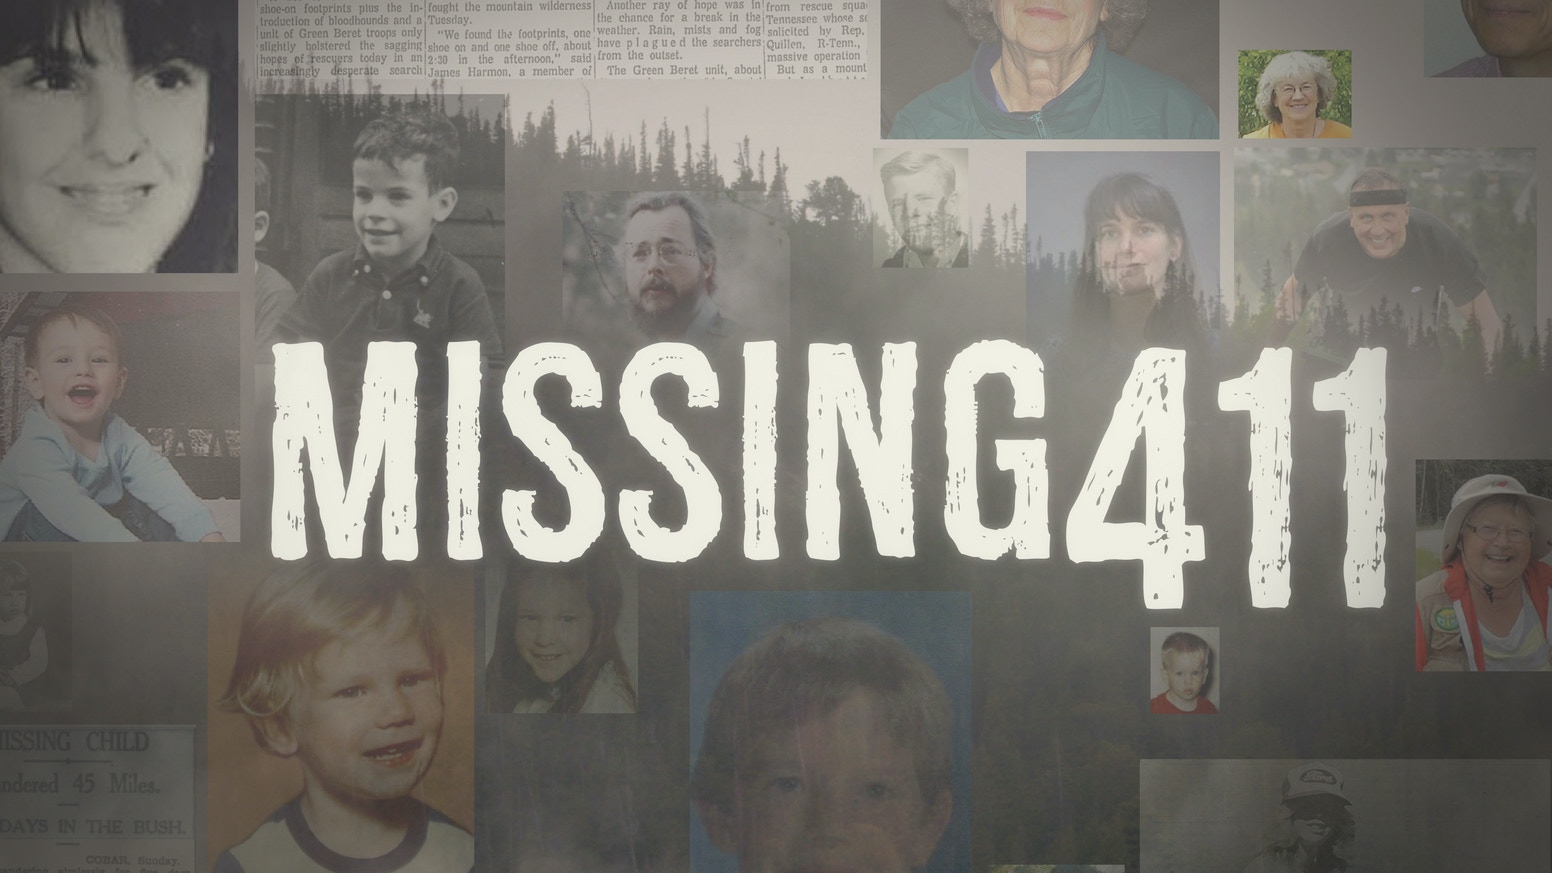 Missing411 seeks the answer to the unsolved disappearances of thousands of visitors in our National Parks & Forests